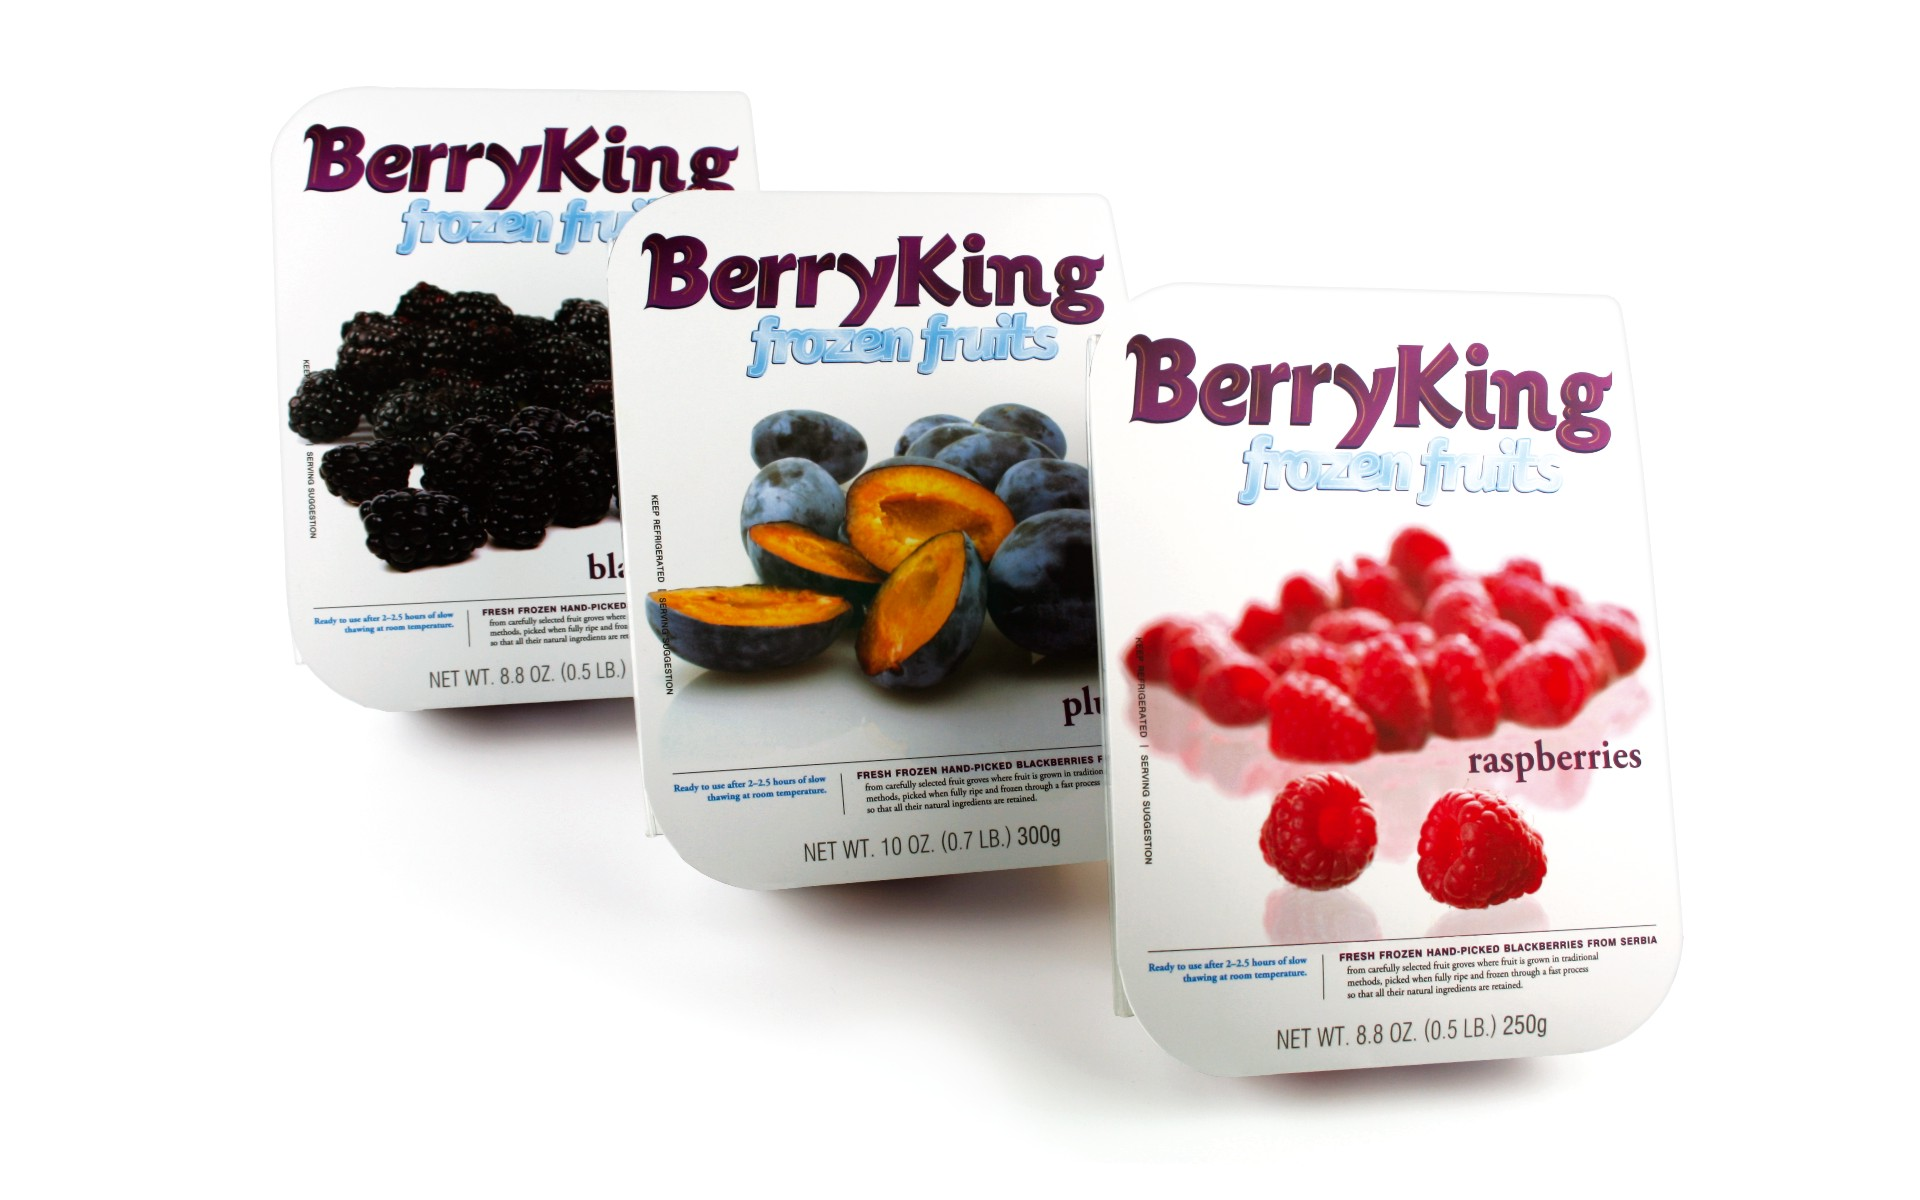 Berry King 02